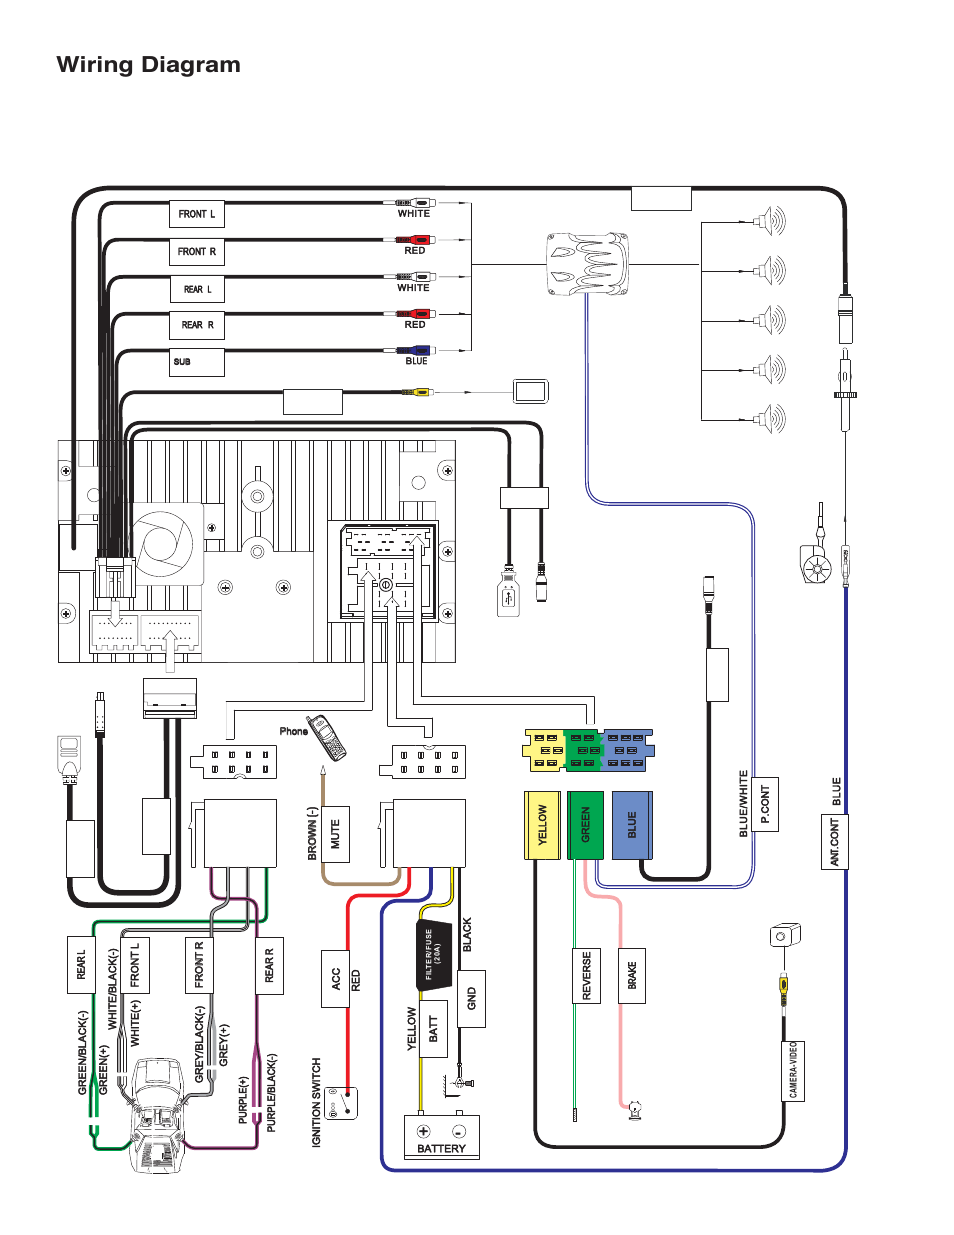 Viper 5000 Wiring Diagram Schematic Diagrams Basic Car Alarm Diagram Viper Car Alarm Wiring Diagram 5000